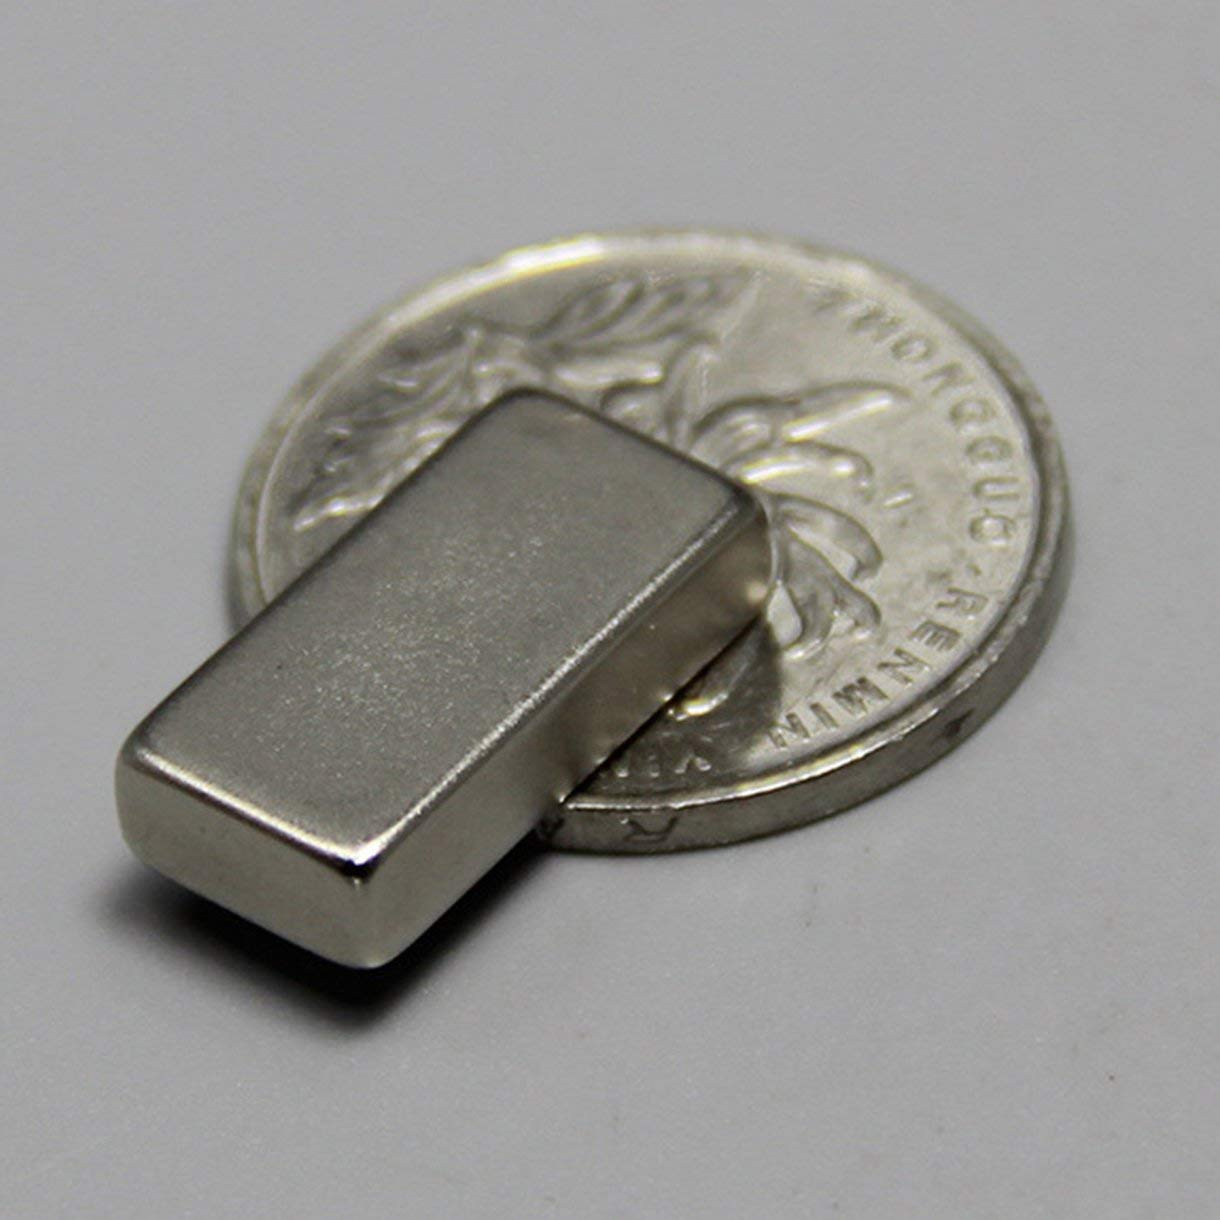 5Mm Strong Magnet Ndfeb Magnet Magnetic Strong Magnetic NeanTak Rare Earth Permanent Magnet King Square F20*10